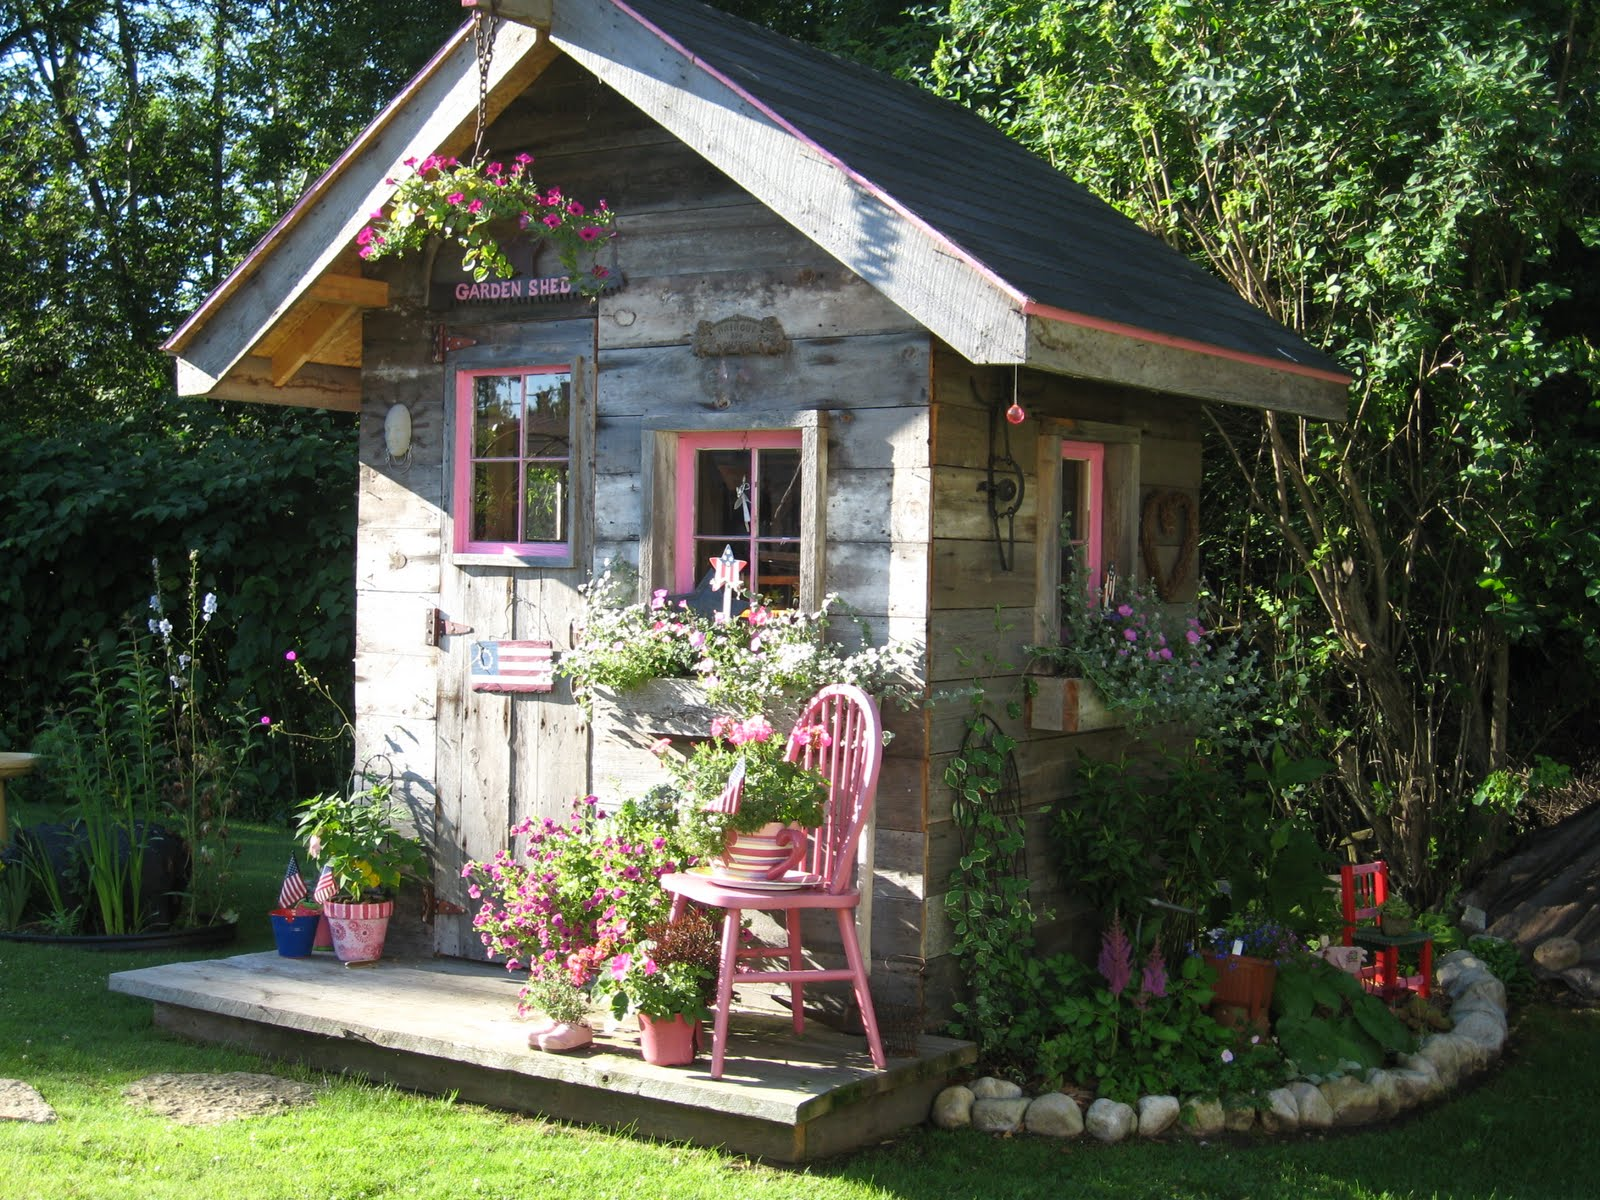 20 wendy houses for the peter pan in you for Garden shed pictures